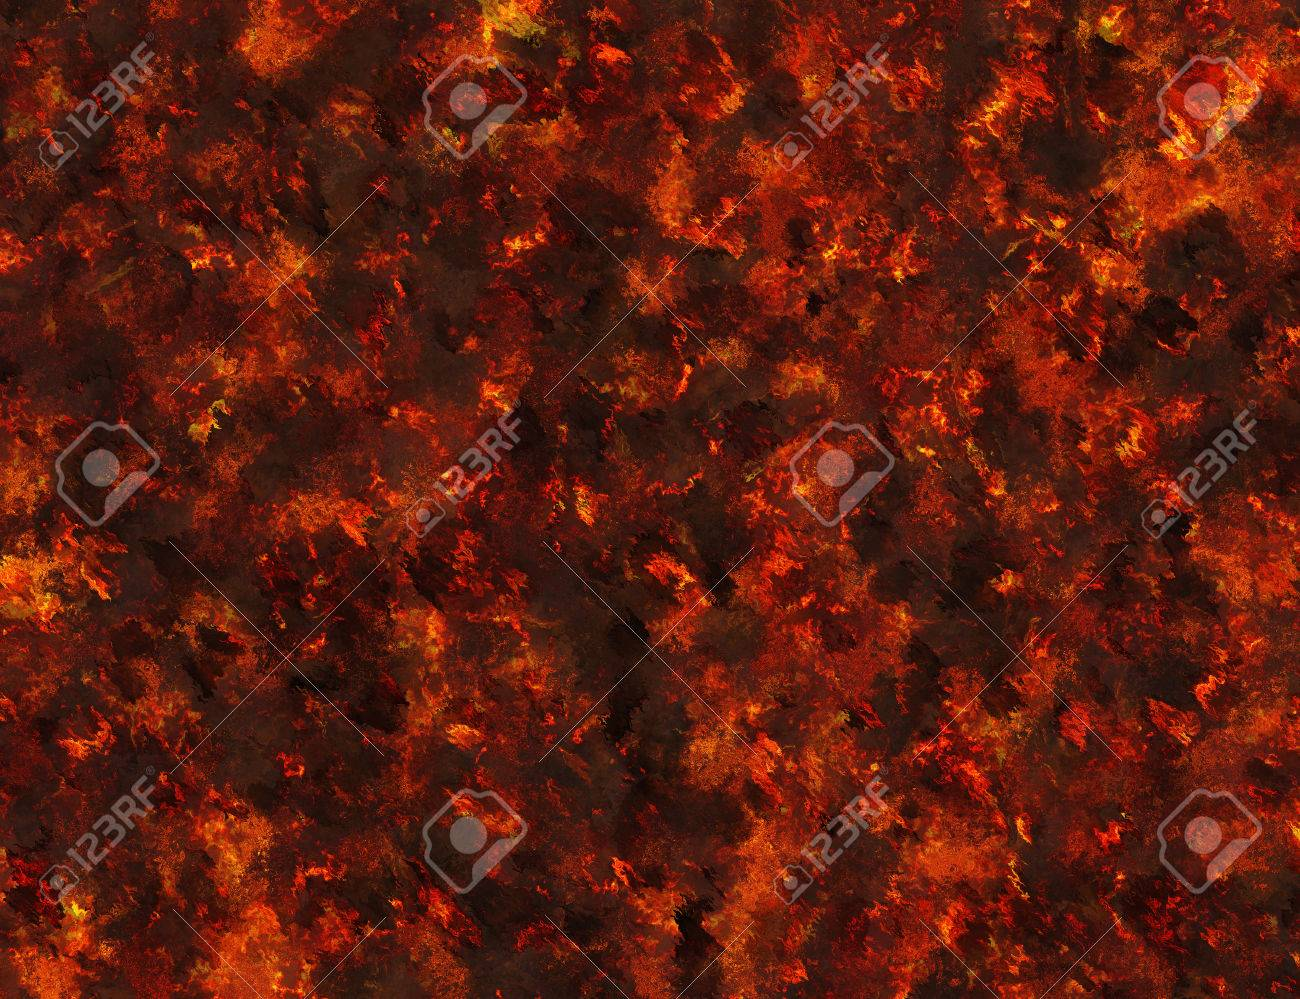 Solidified hot coal fire texture backgrounds stock photo picture solidified hot coal fire texture backgrounds stock photo 62557674 voltagebd Gallery